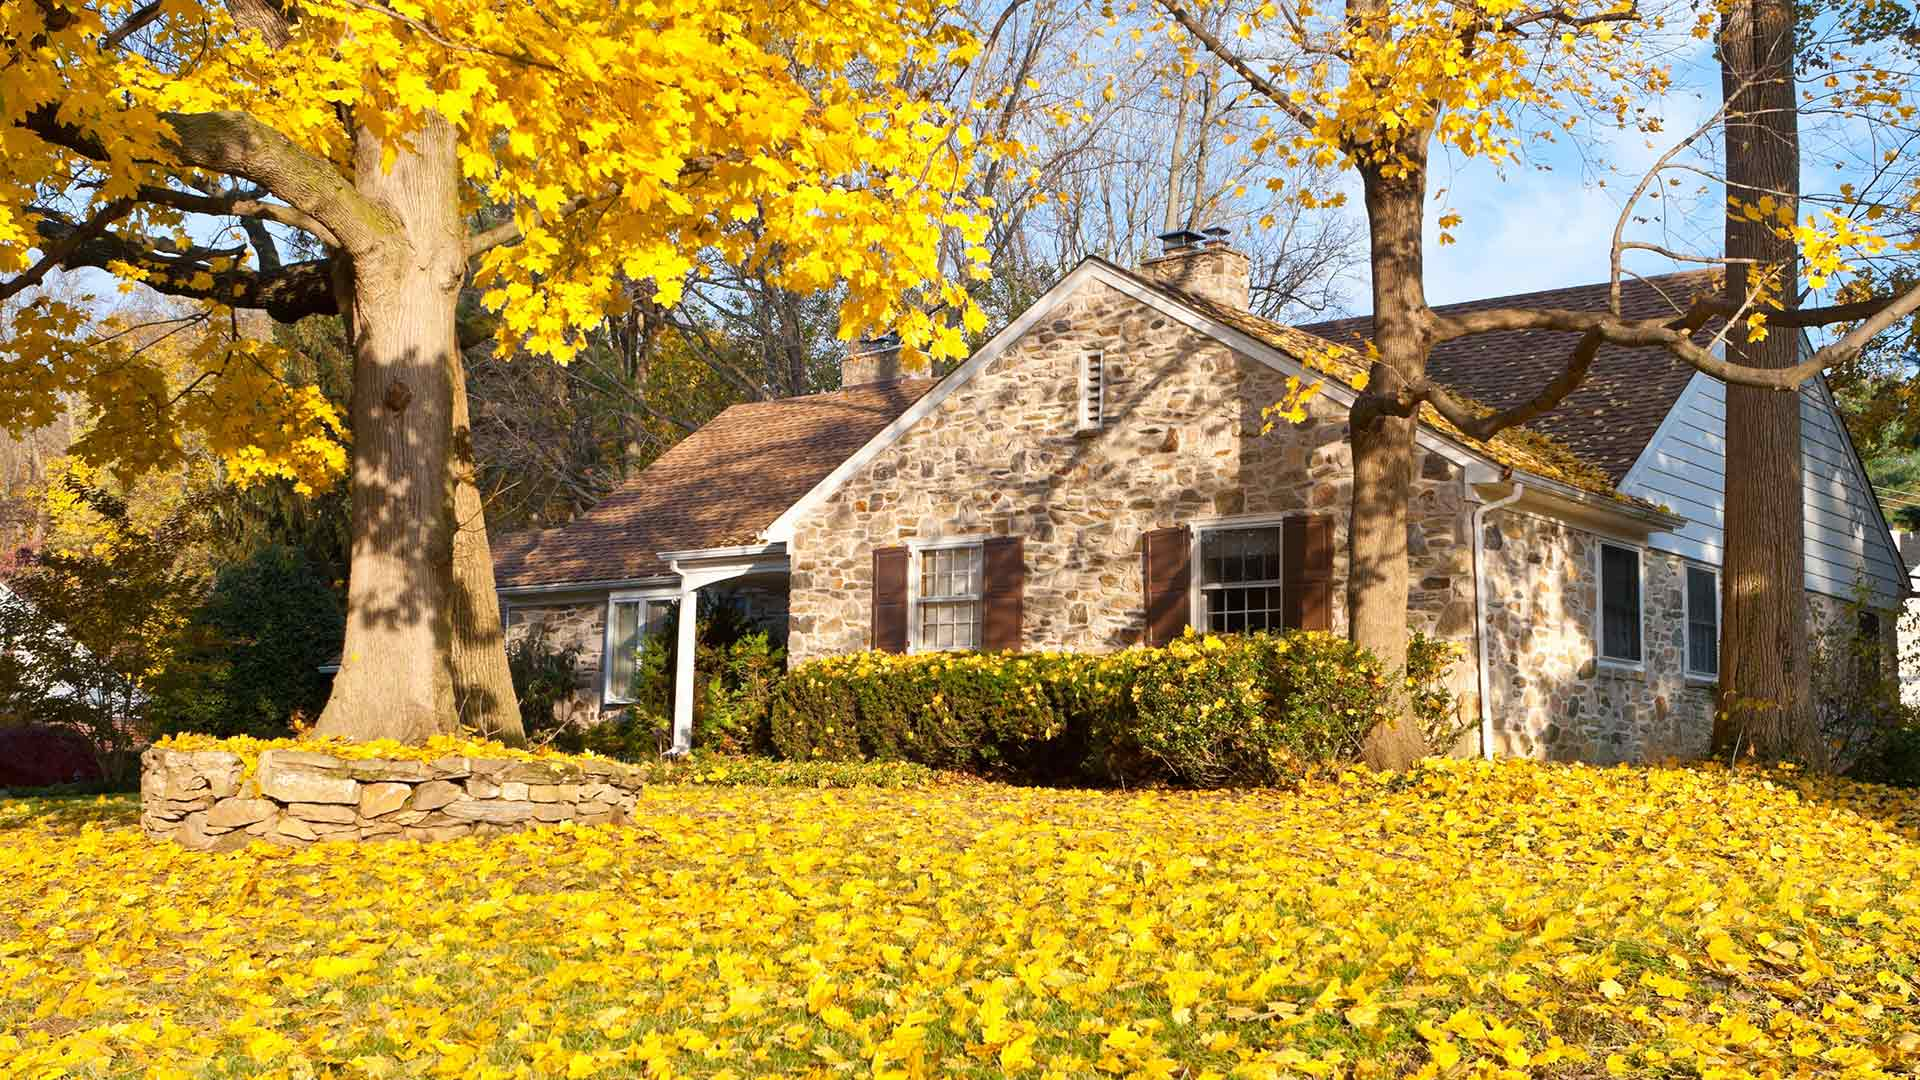 A home in Macomb, MI covered in fall leaves.